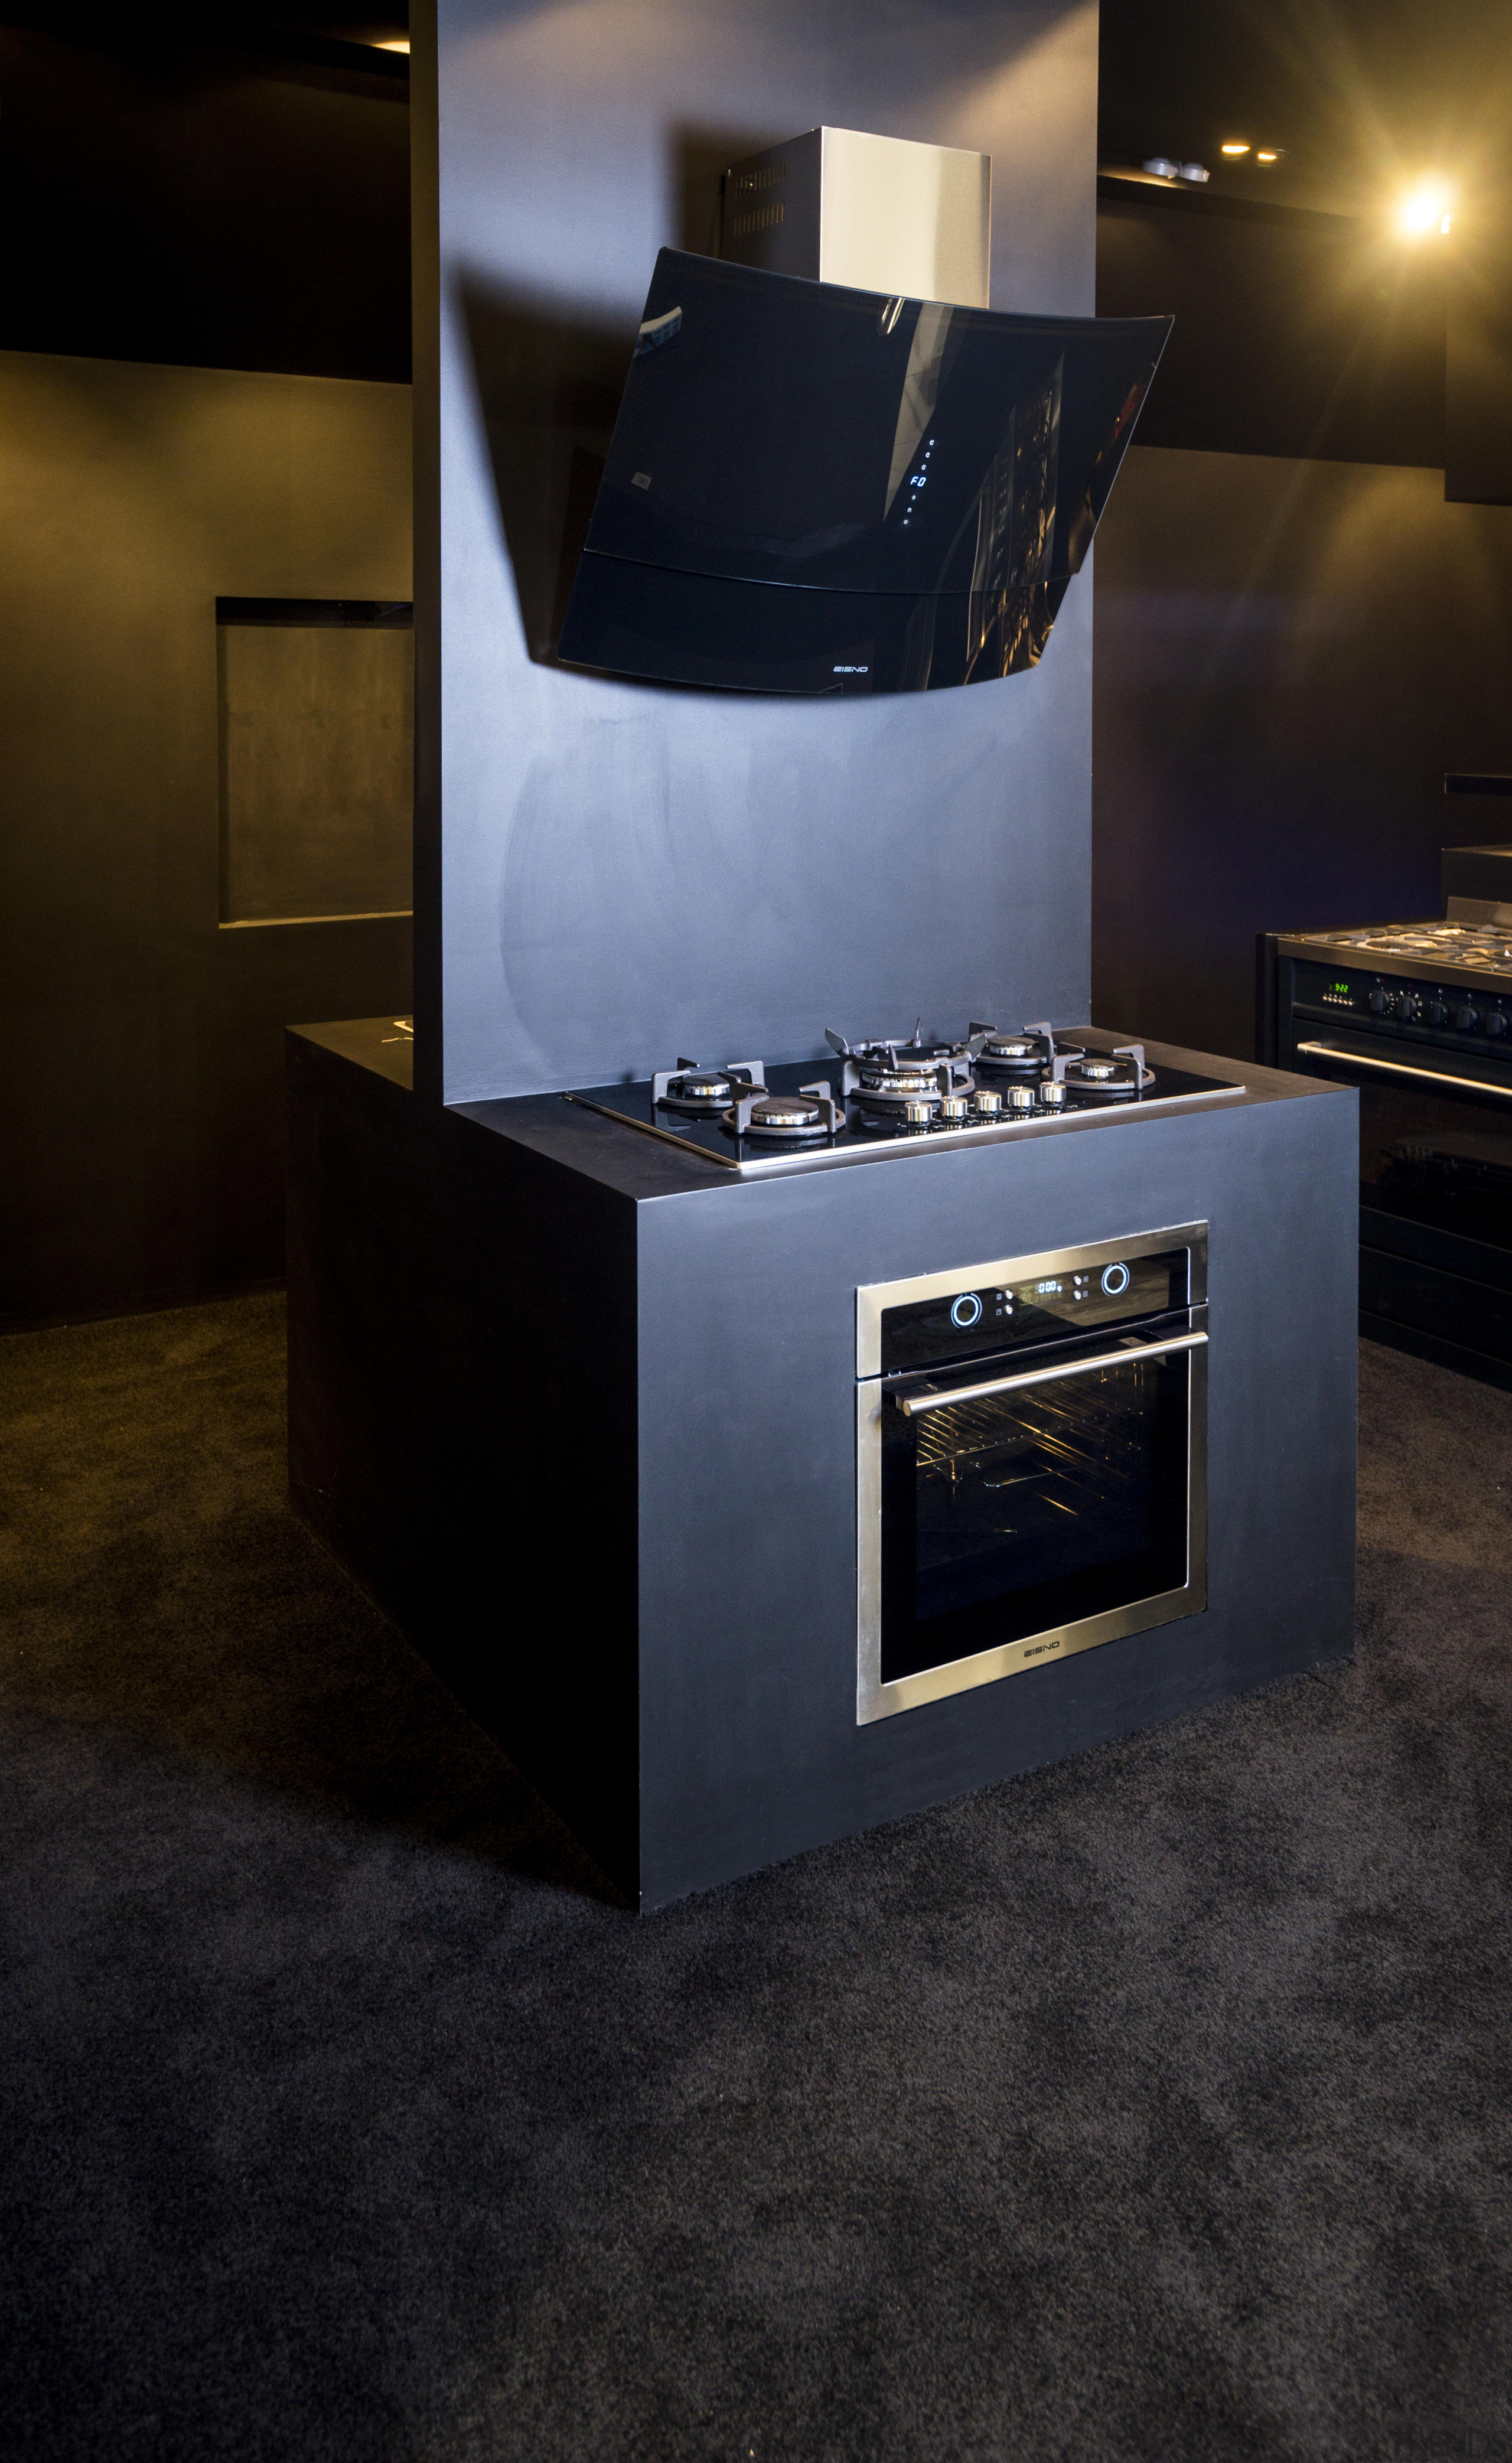 Eisno Lifetech Appliances is an international company focused floor, flooring, furniture, hearth, home appliance, interior design, kitchen stove, product design, table, black